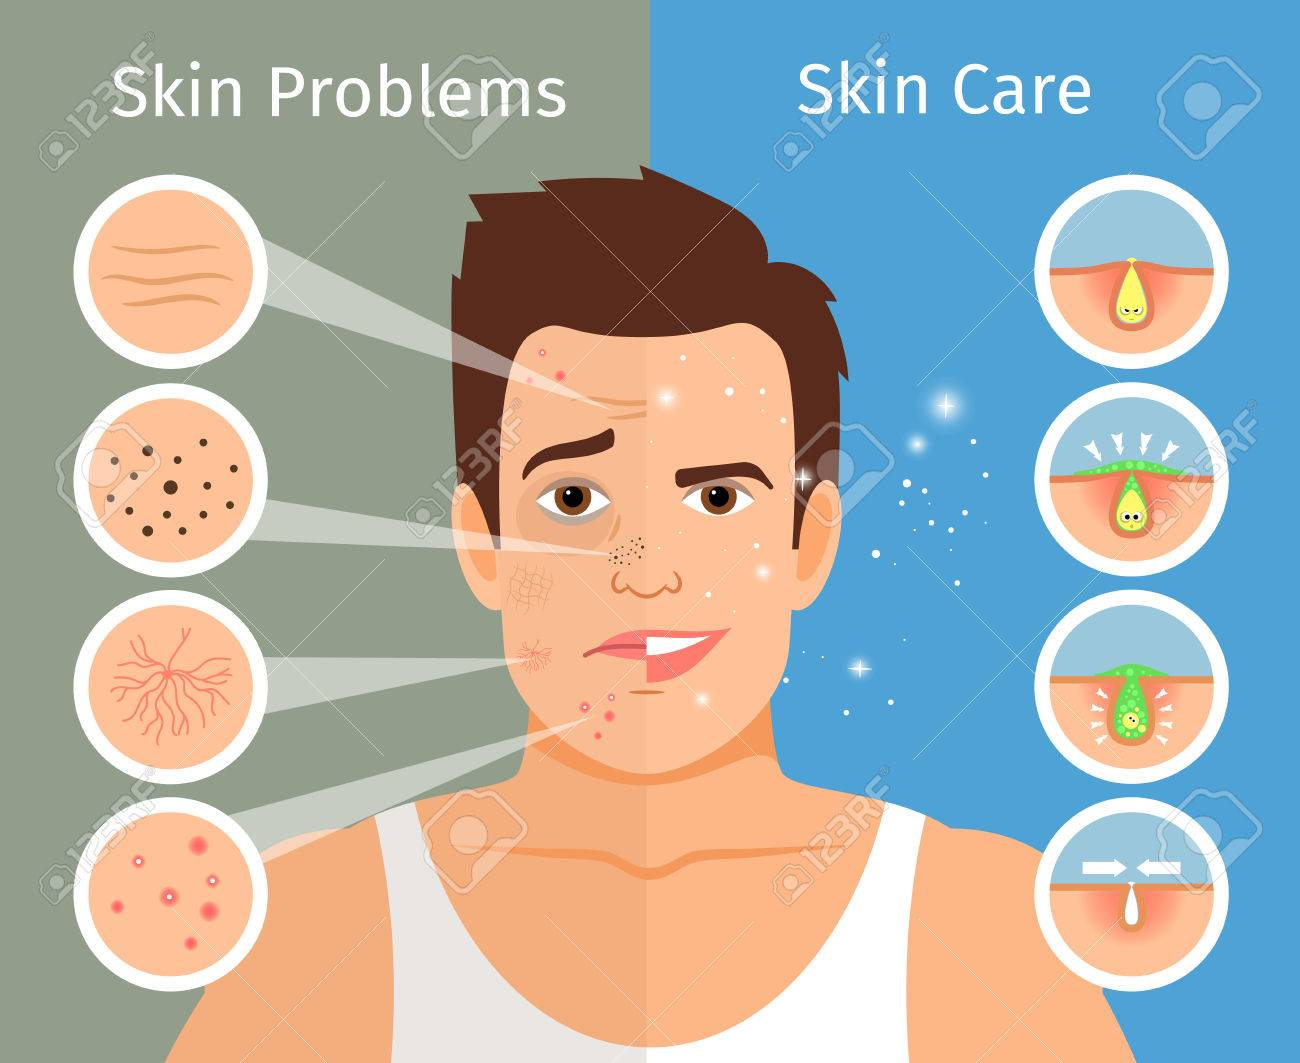 Male face skin treatment illustration, young man portrait with beautiful and troubled facial skins. - 76736267